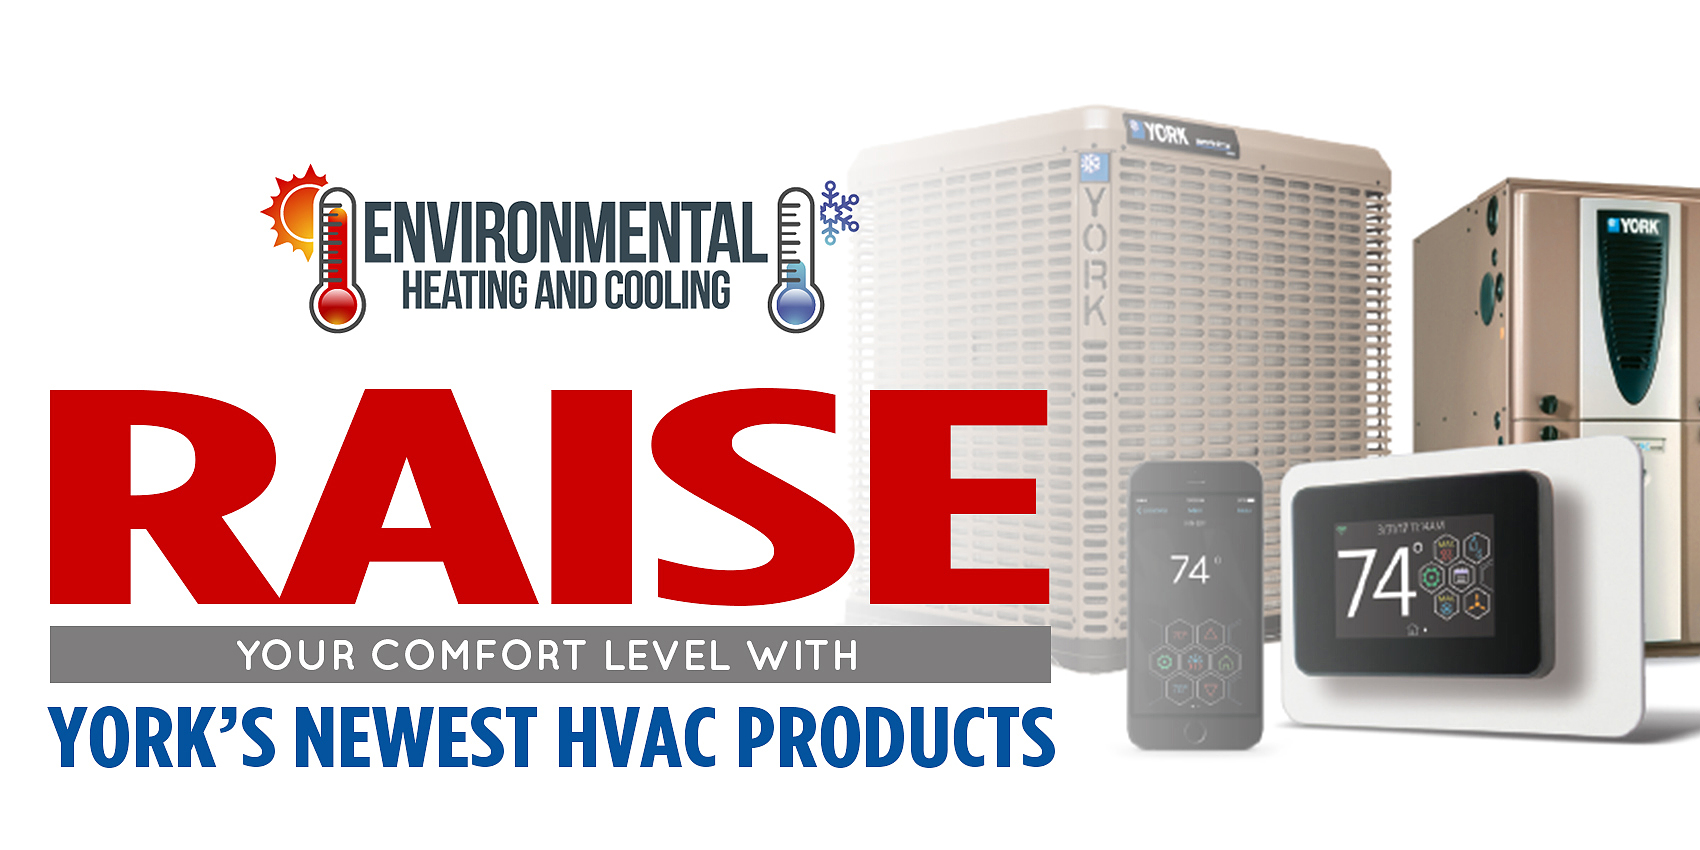 Raise Your Comfort Level With YORK's Newest HVAC Products